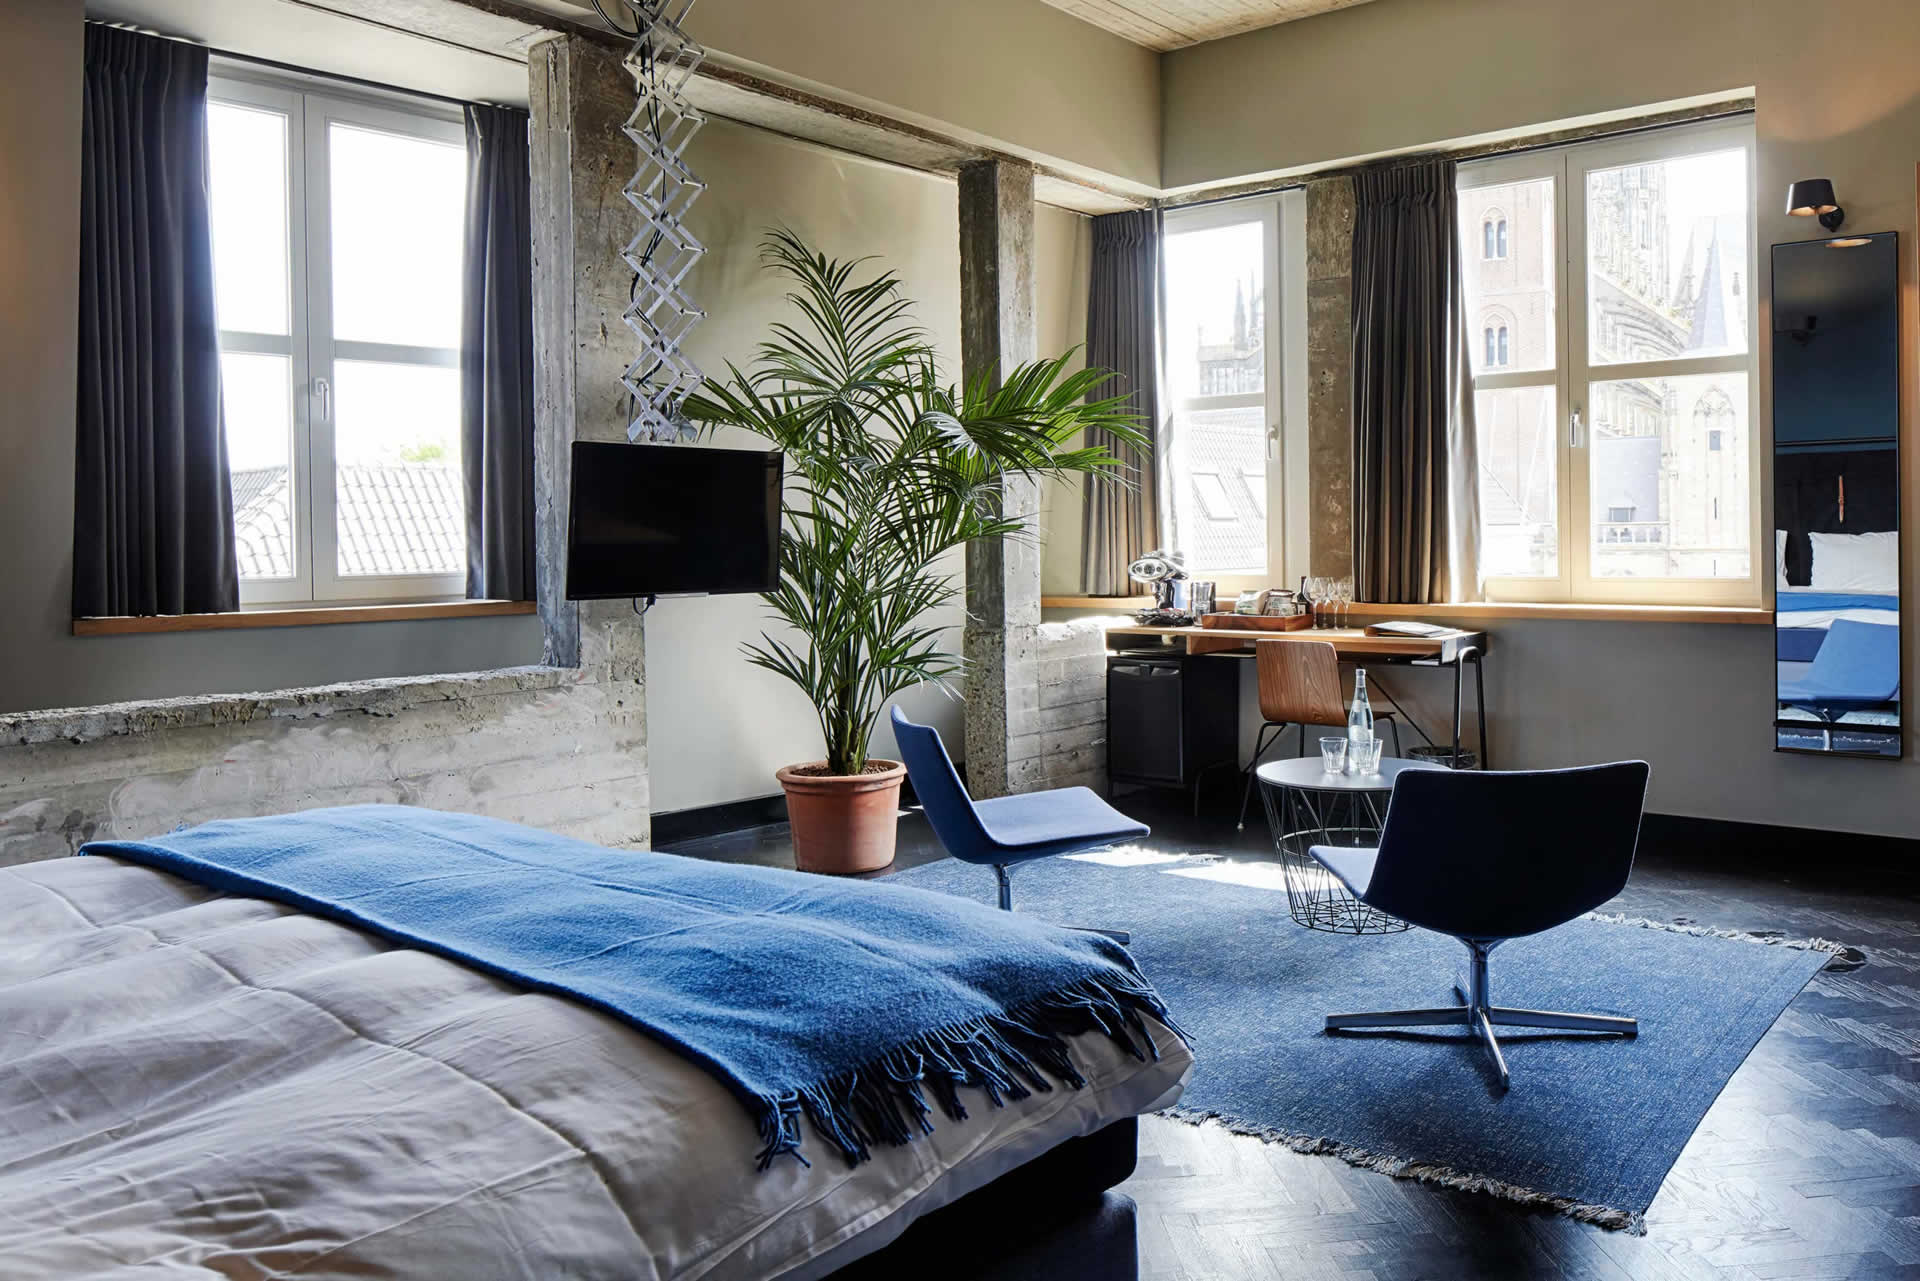 The duke boutique hotel in den bosch for Design boutique hotel torino